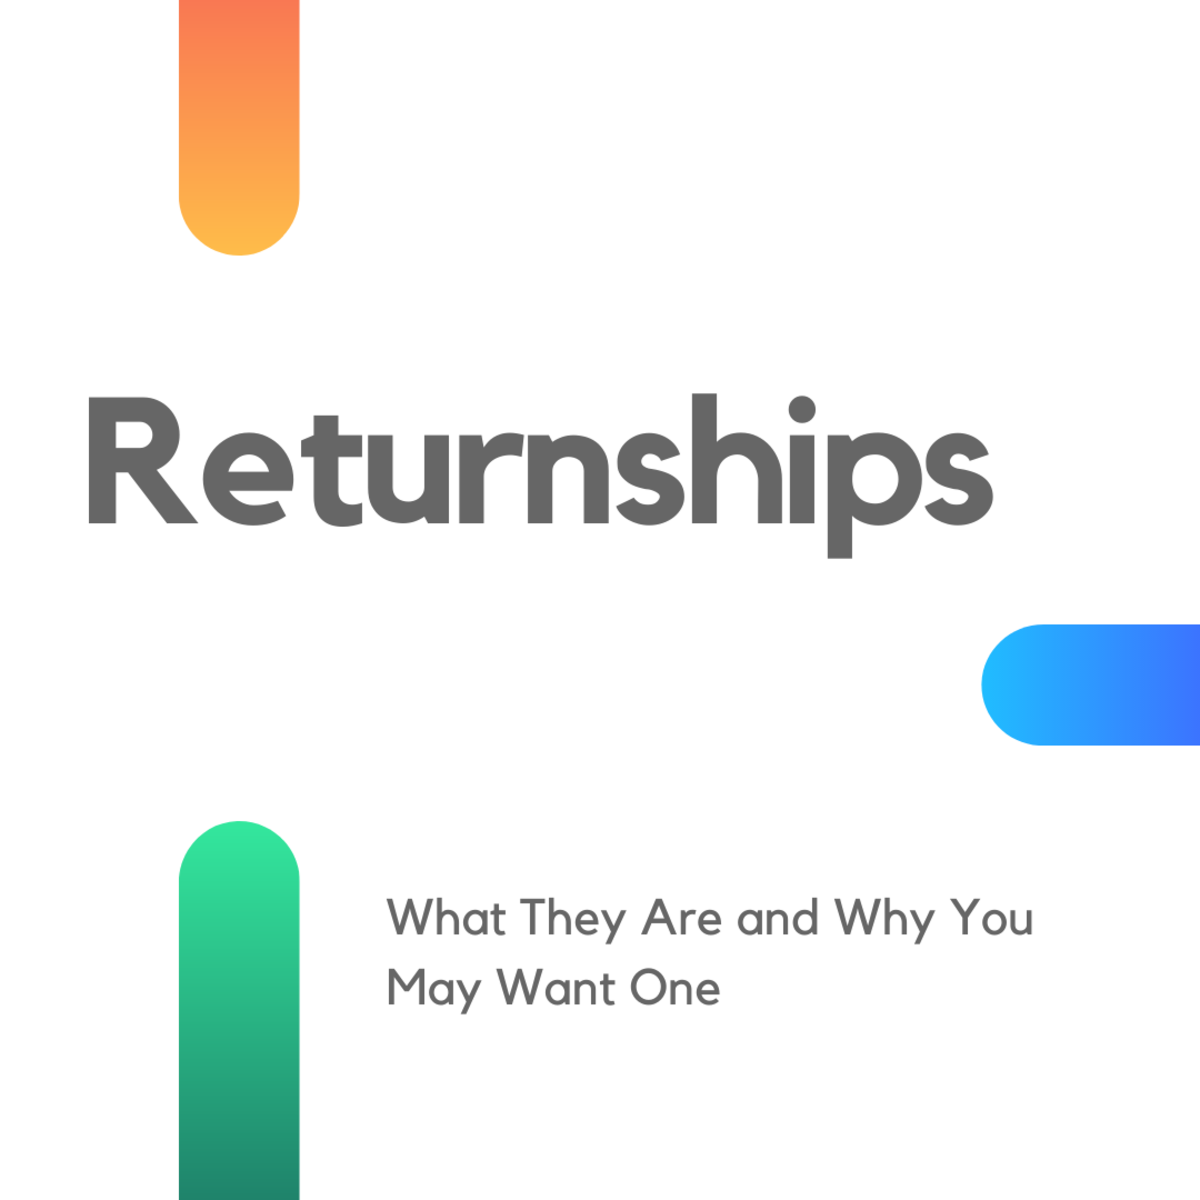 What Are Returnships? (The Pros and Cons)